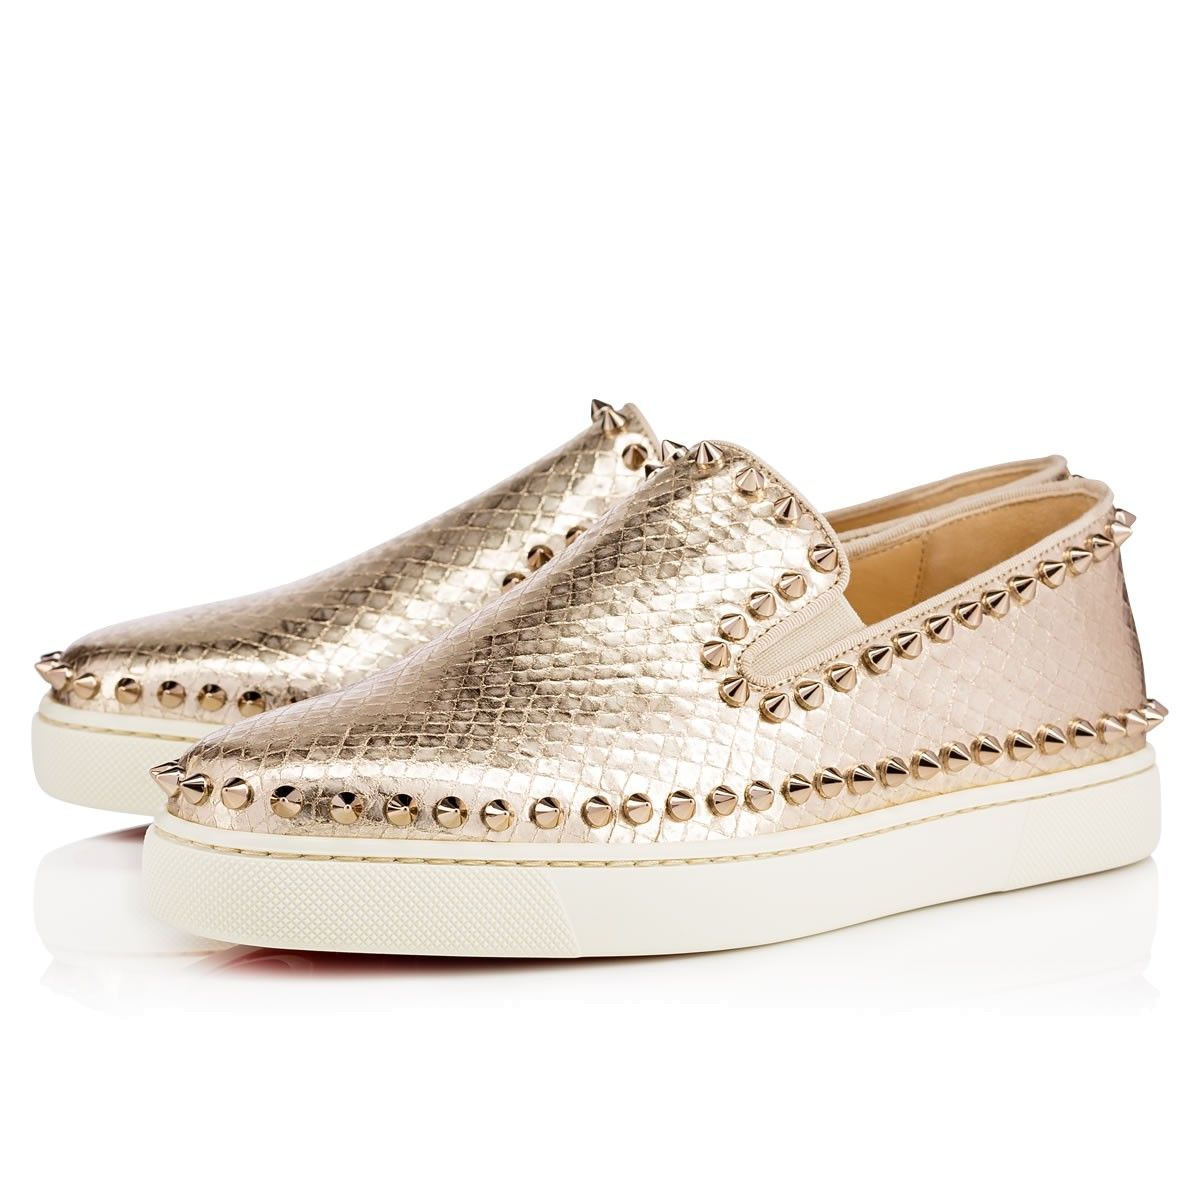 54d2208bb Shoes - Pik Boat Women s Flat - Christian Louboutin